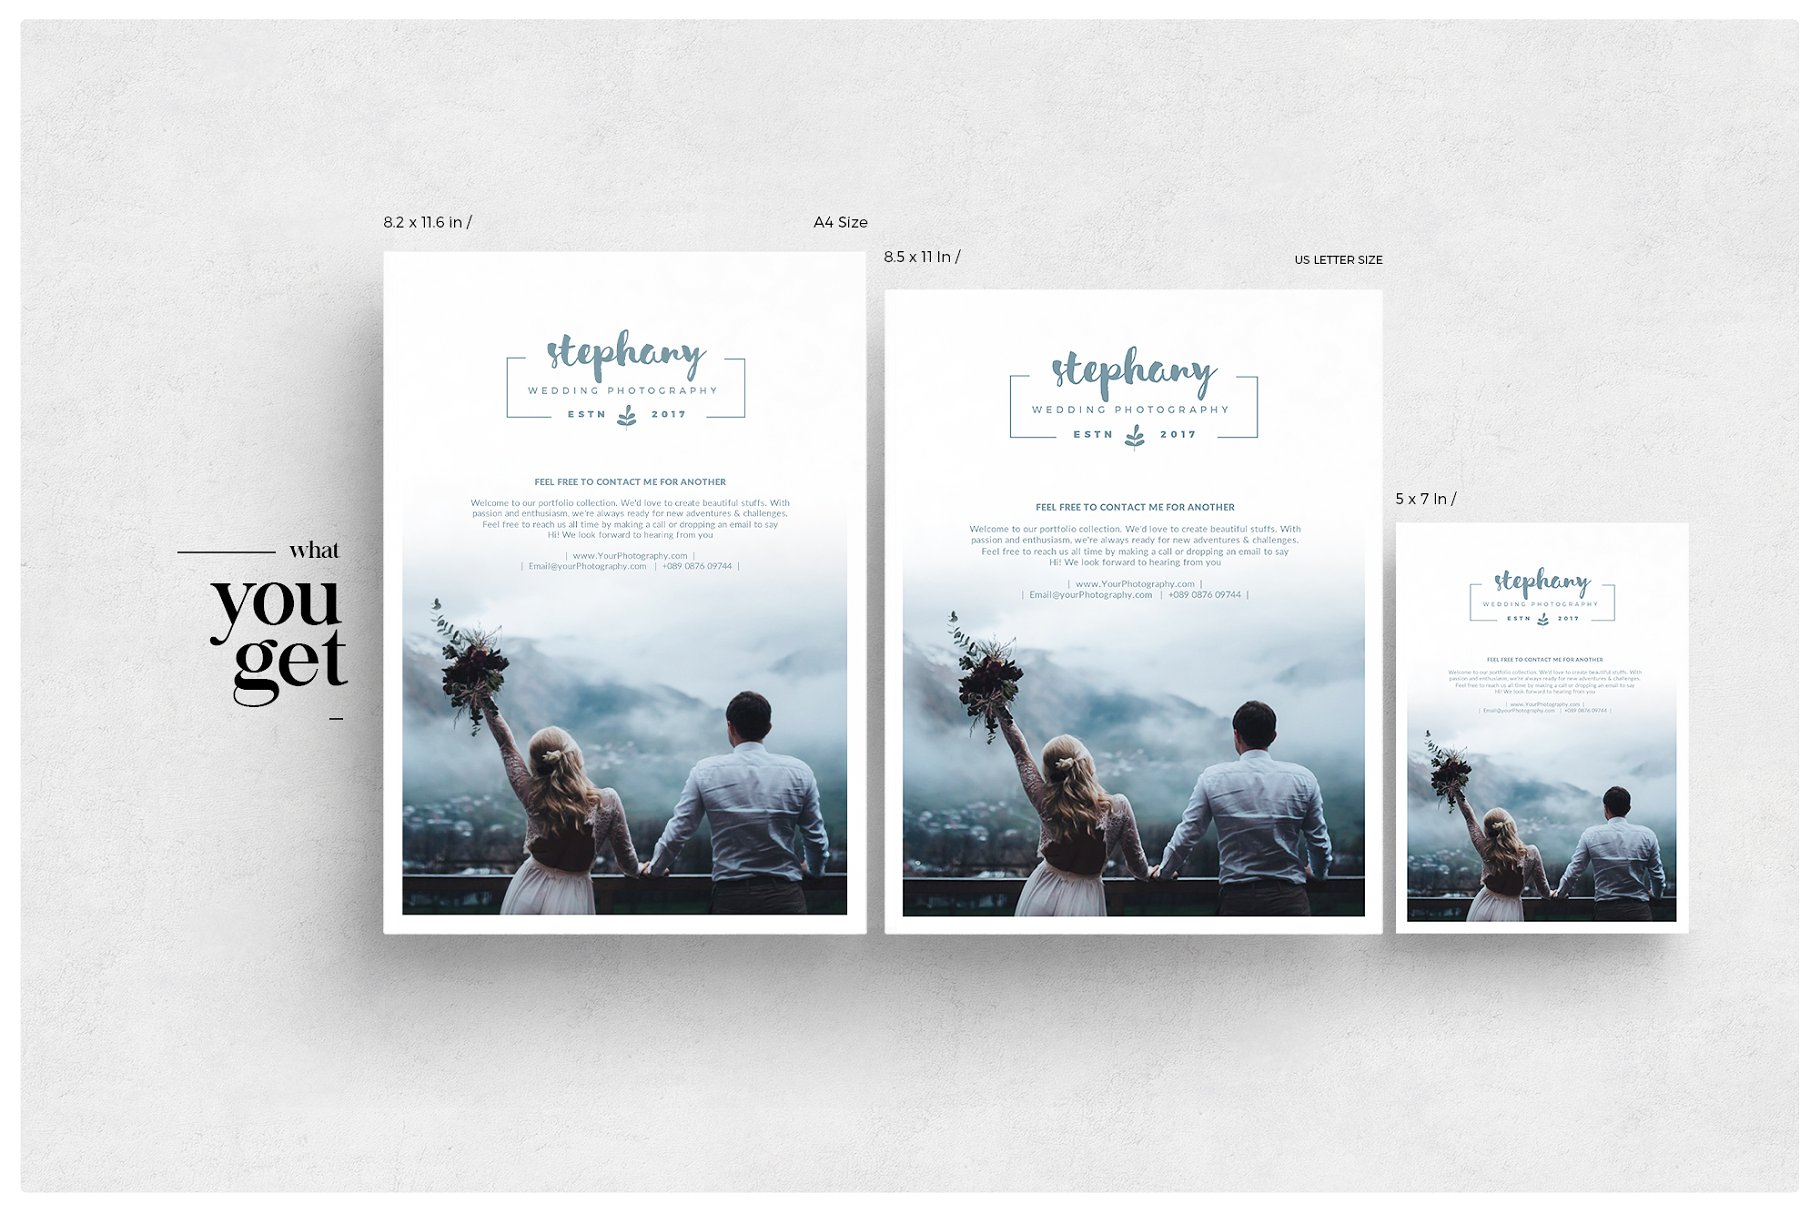 photography-pricing-guide-flyer-.jpg